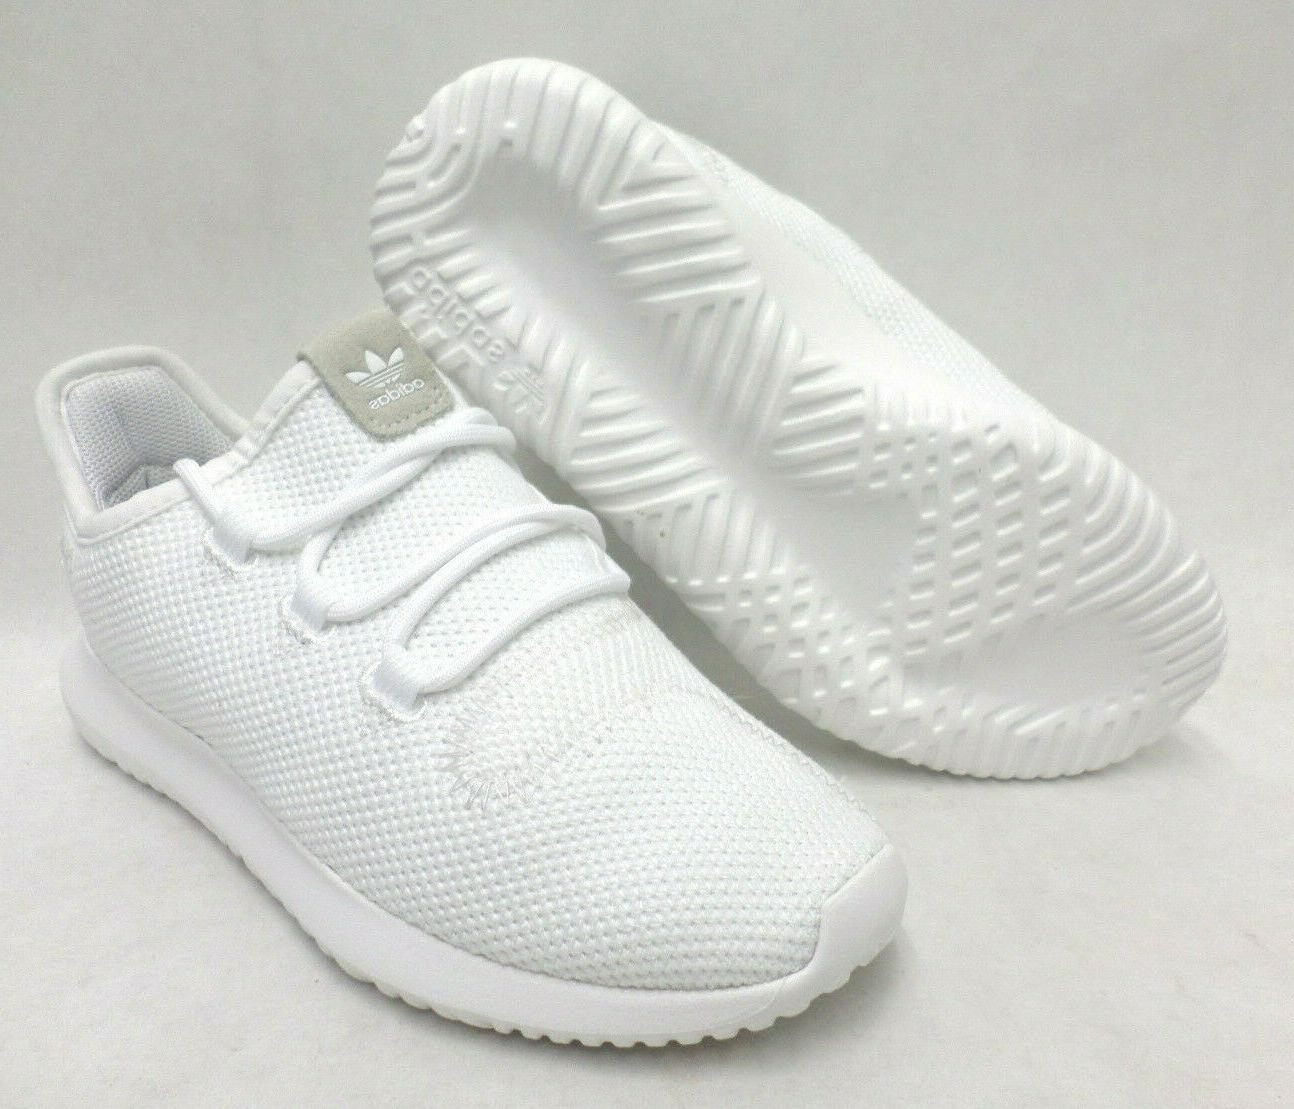 Adidas Shoes Tubular Shadow Boys Sneakers White Your